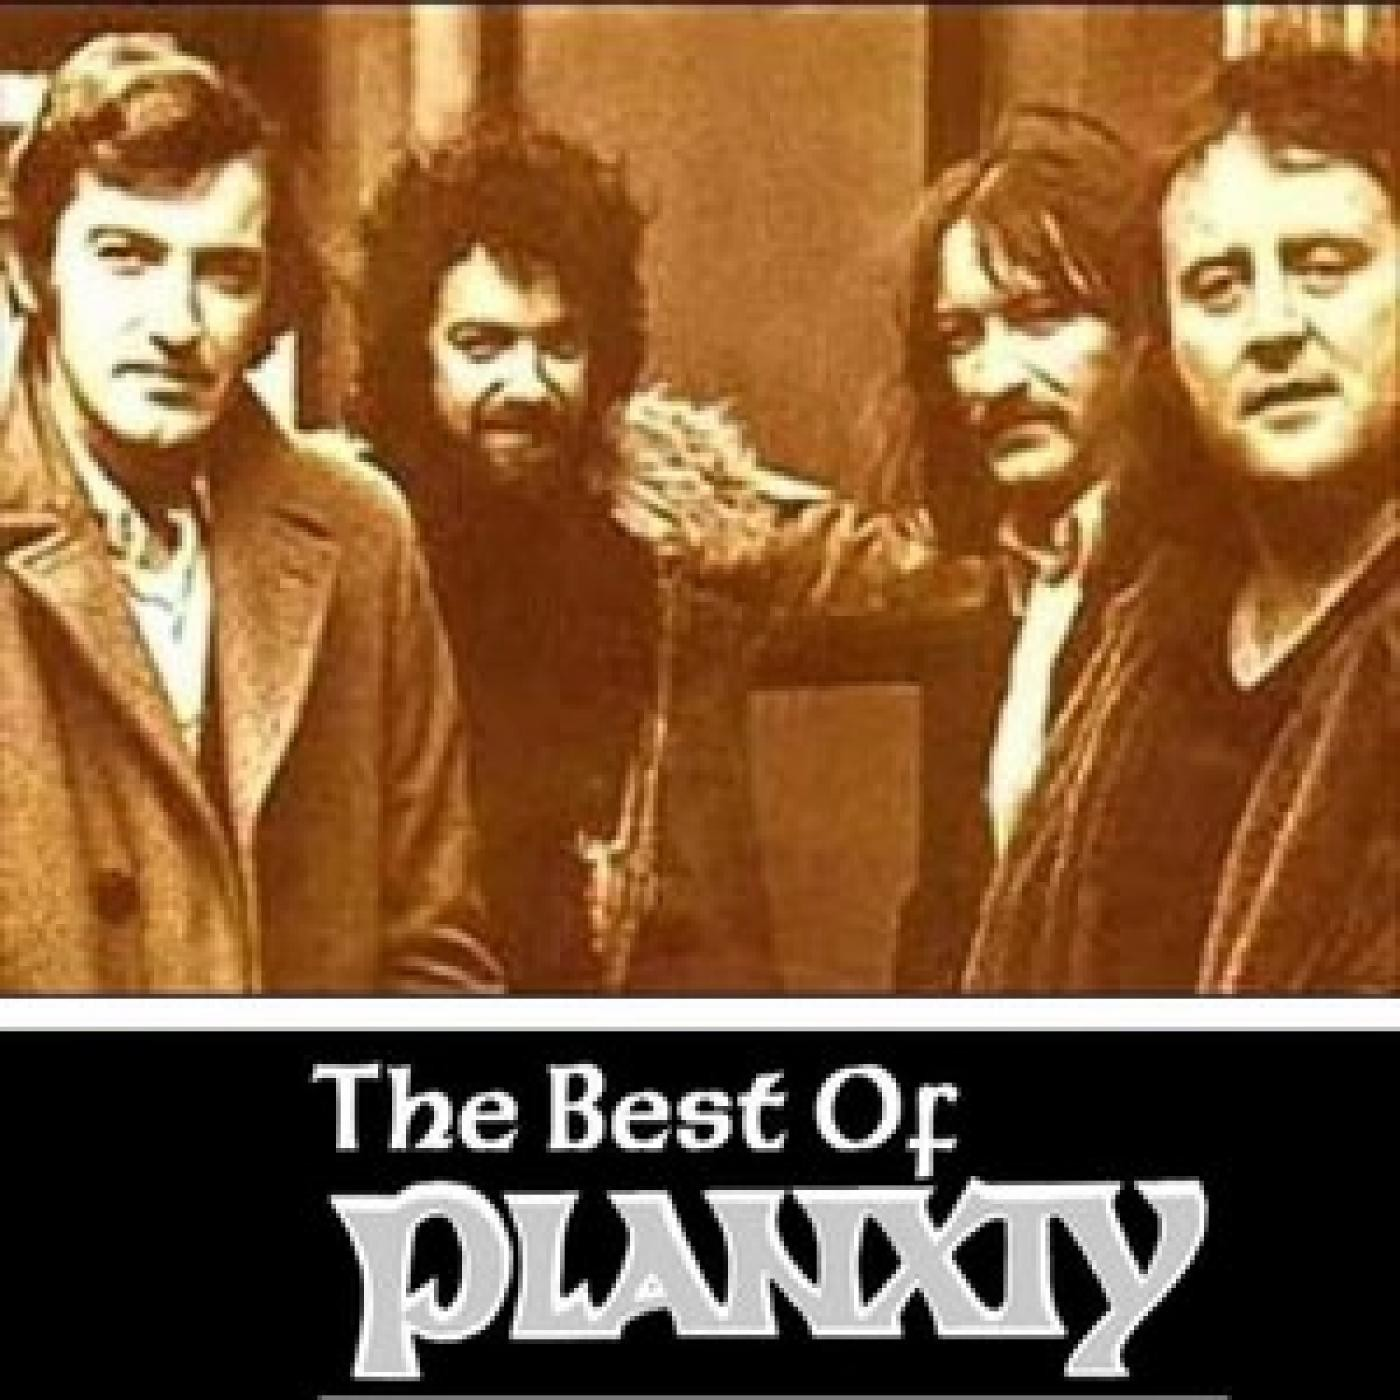 PLANXTY - Follow me up to carlow (1973)